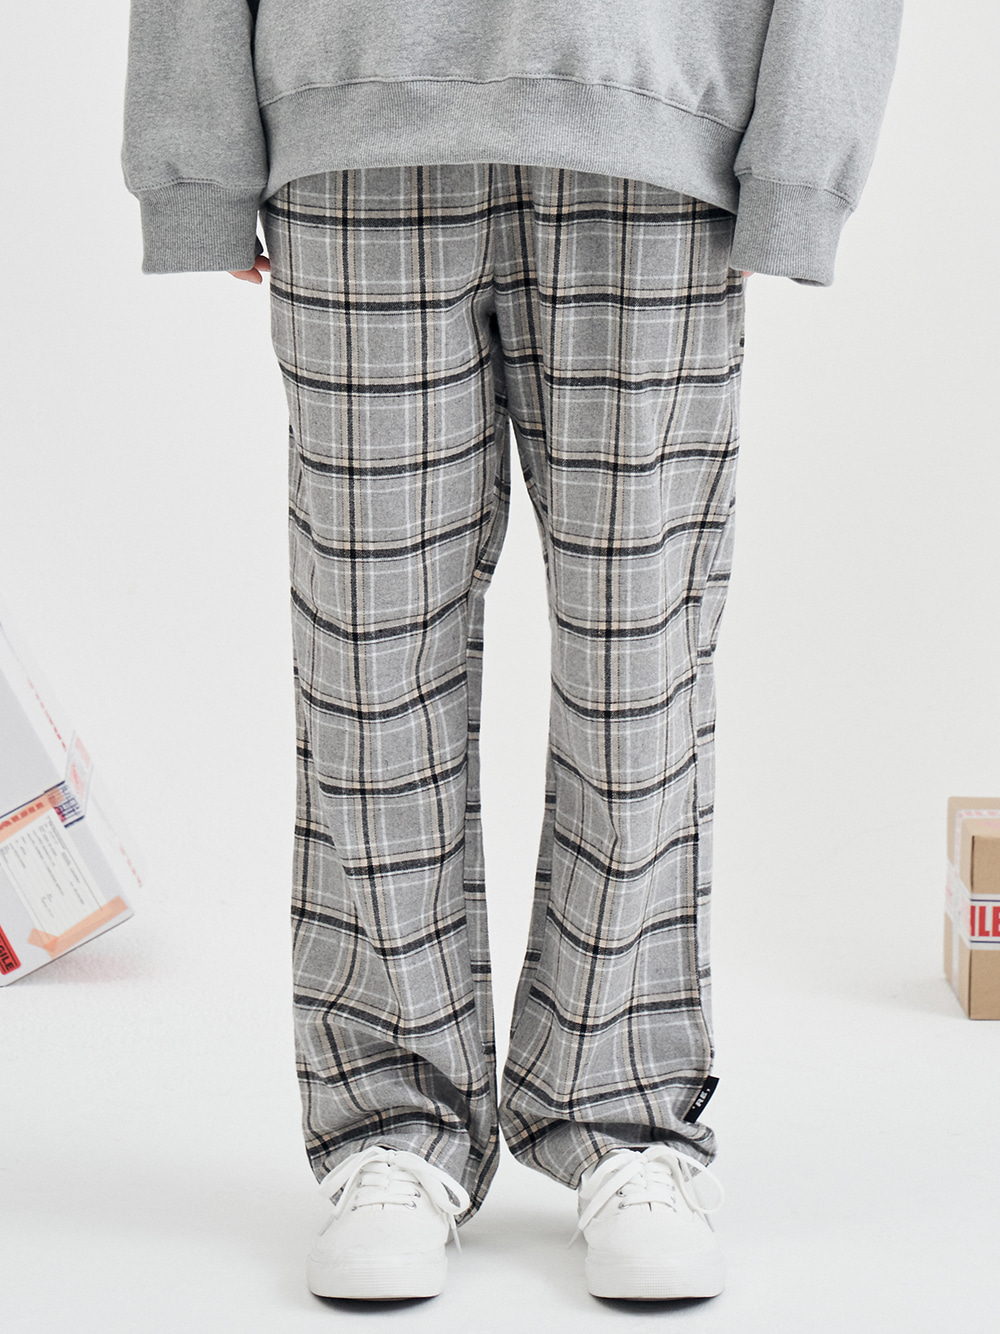 recon check pants (gray) [9/29 delivery]